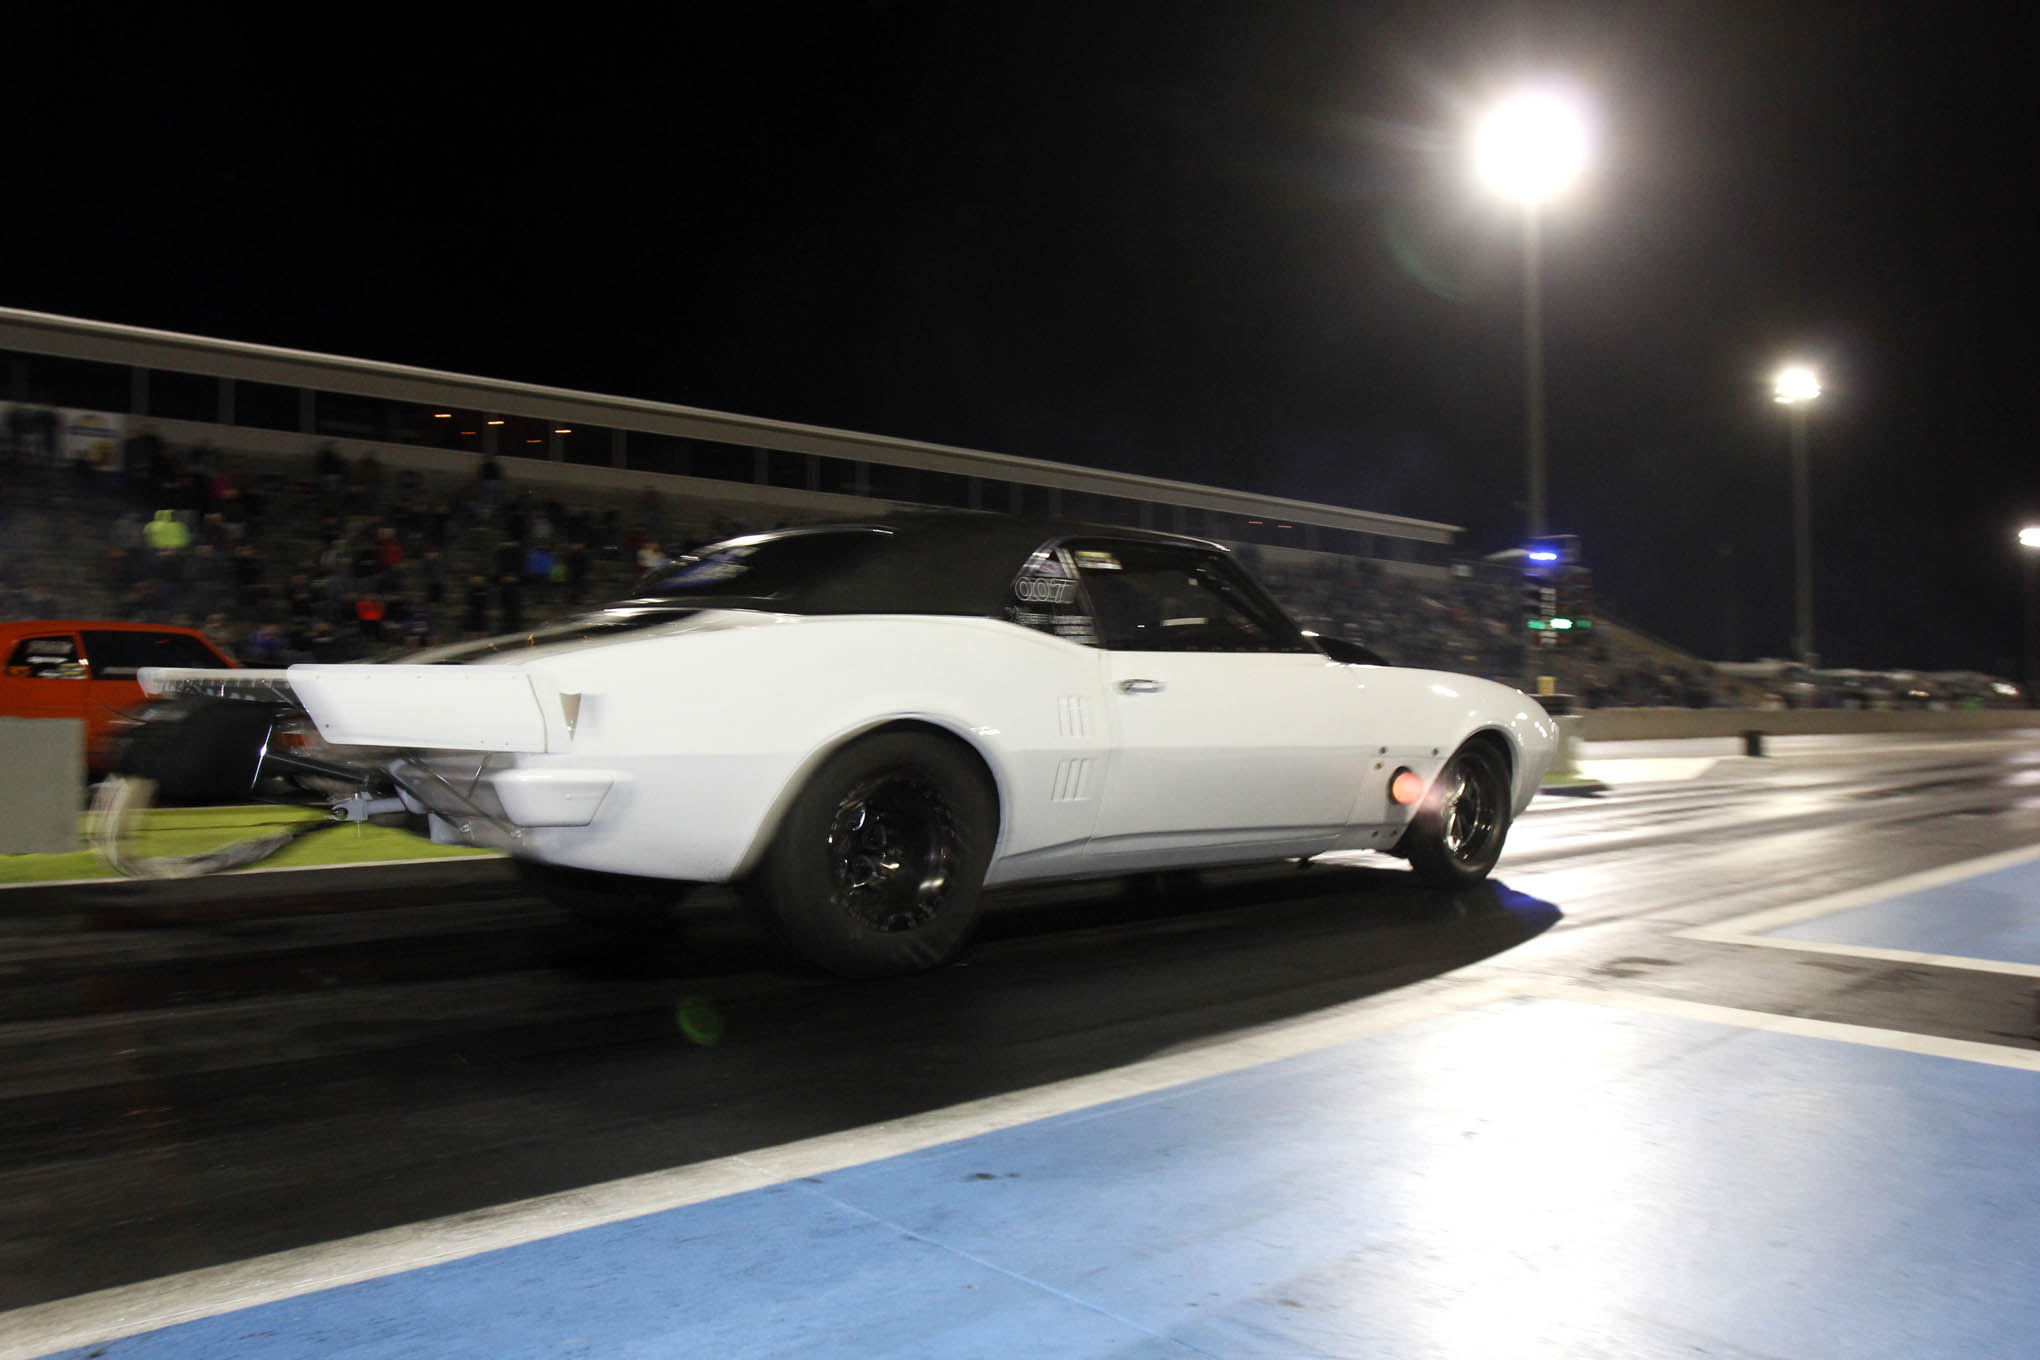 Also in X275, we liked this 1968 Firebird, driven by Charlie Johnson of Grand Ridge, Florida. The 582 big-block Chevy was built by Jay Kite Racing engines with a Dart block and Brodix heads. Johnson qualified in the No. 8 position and made it the second round of eliminations, losing to Jacky McCarty.